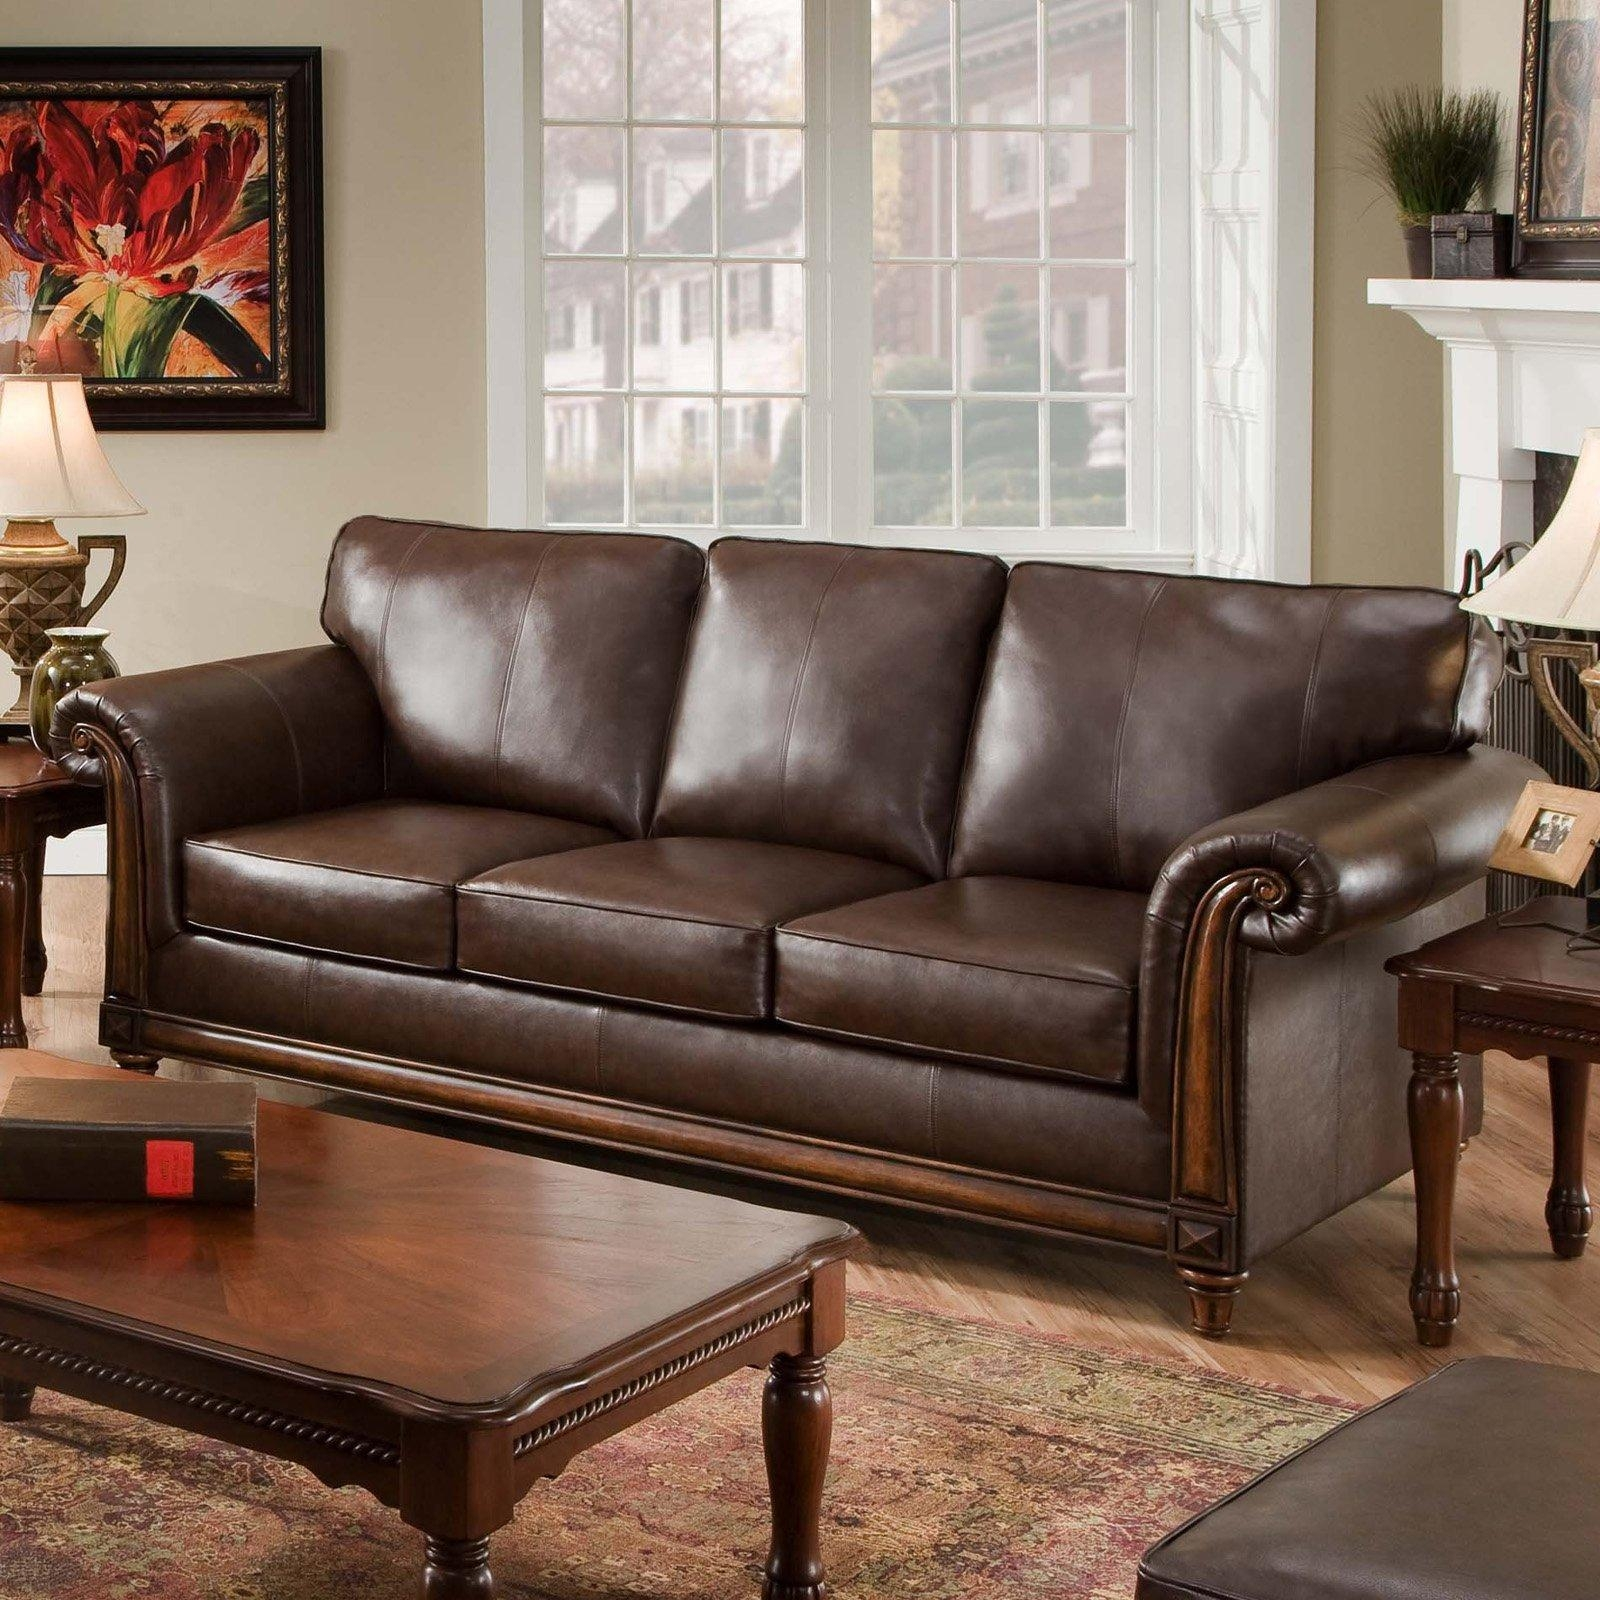 Simmons San Diego Coffee Leather Sofa | Hayneedle Inside Simmons Leather Sofas And Loveseats (Image 10 of 20)